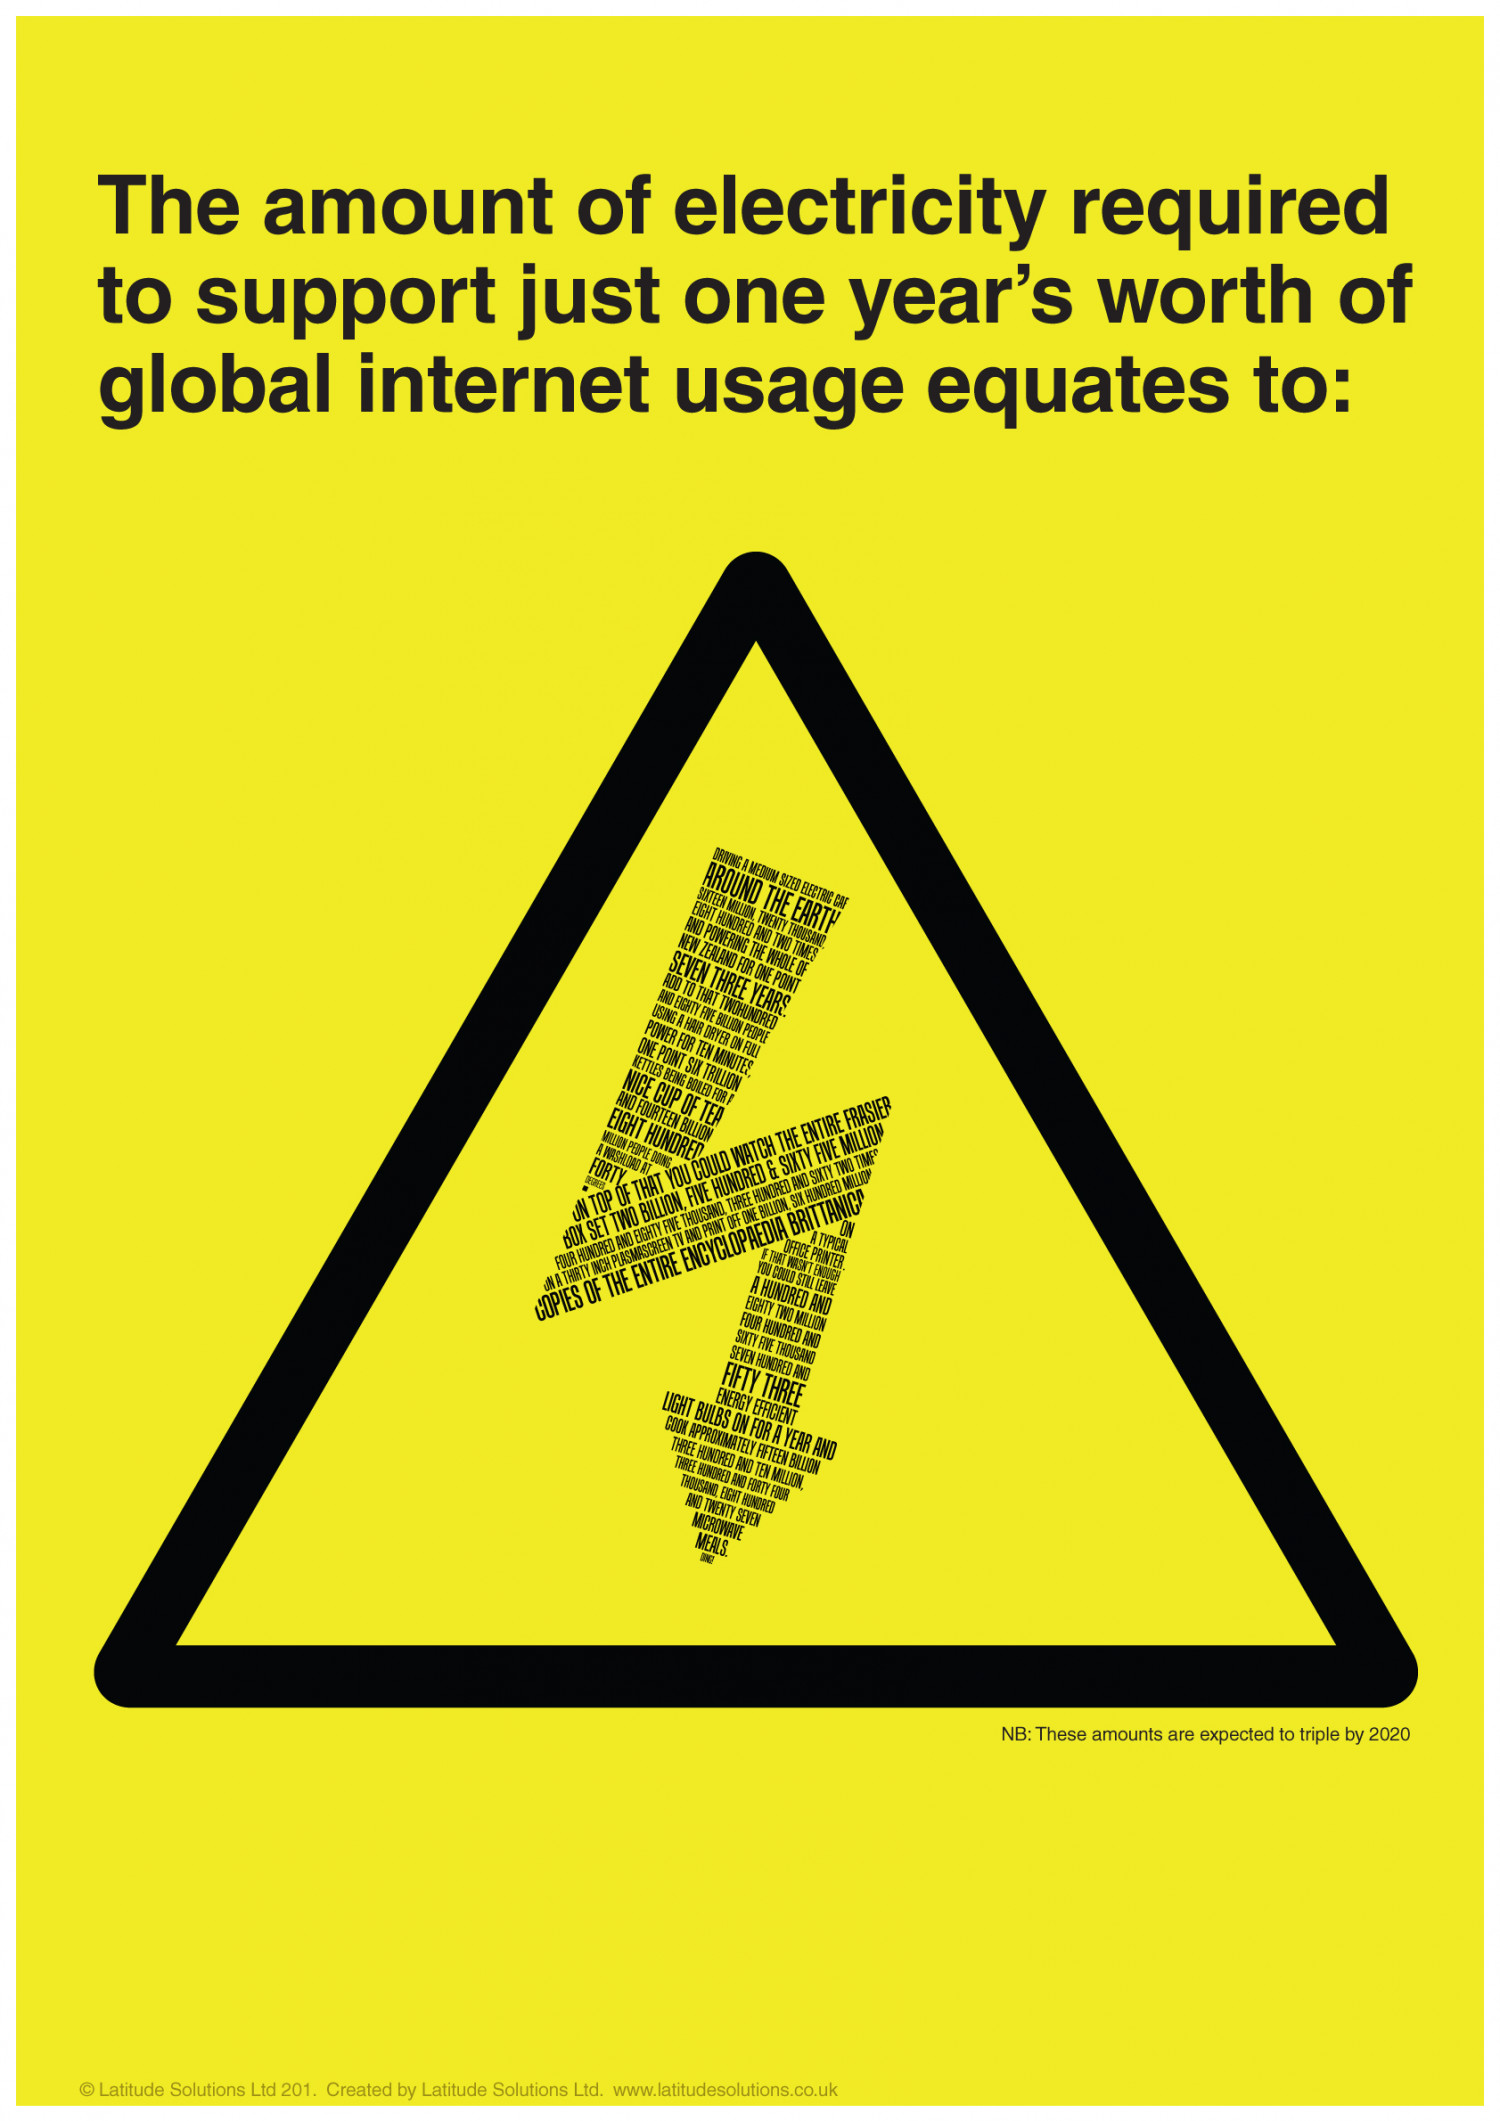 How Much Electricity Does The Internet Use Annually? Infographic